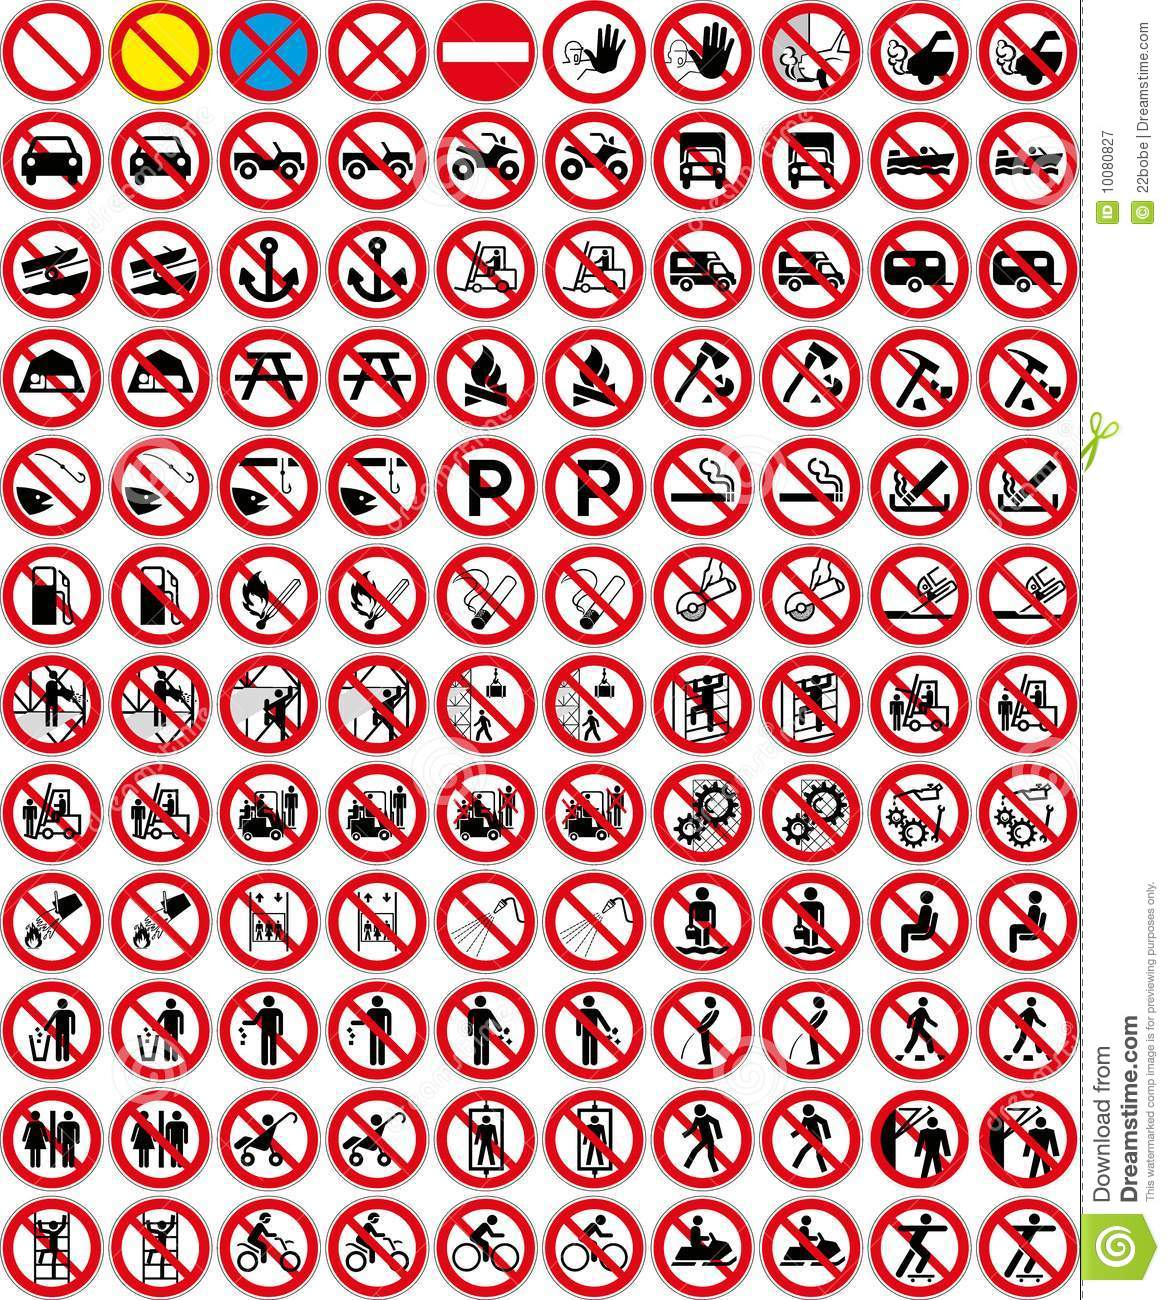 Signs Collection 3 No Sign Vector Royalty Free Stock